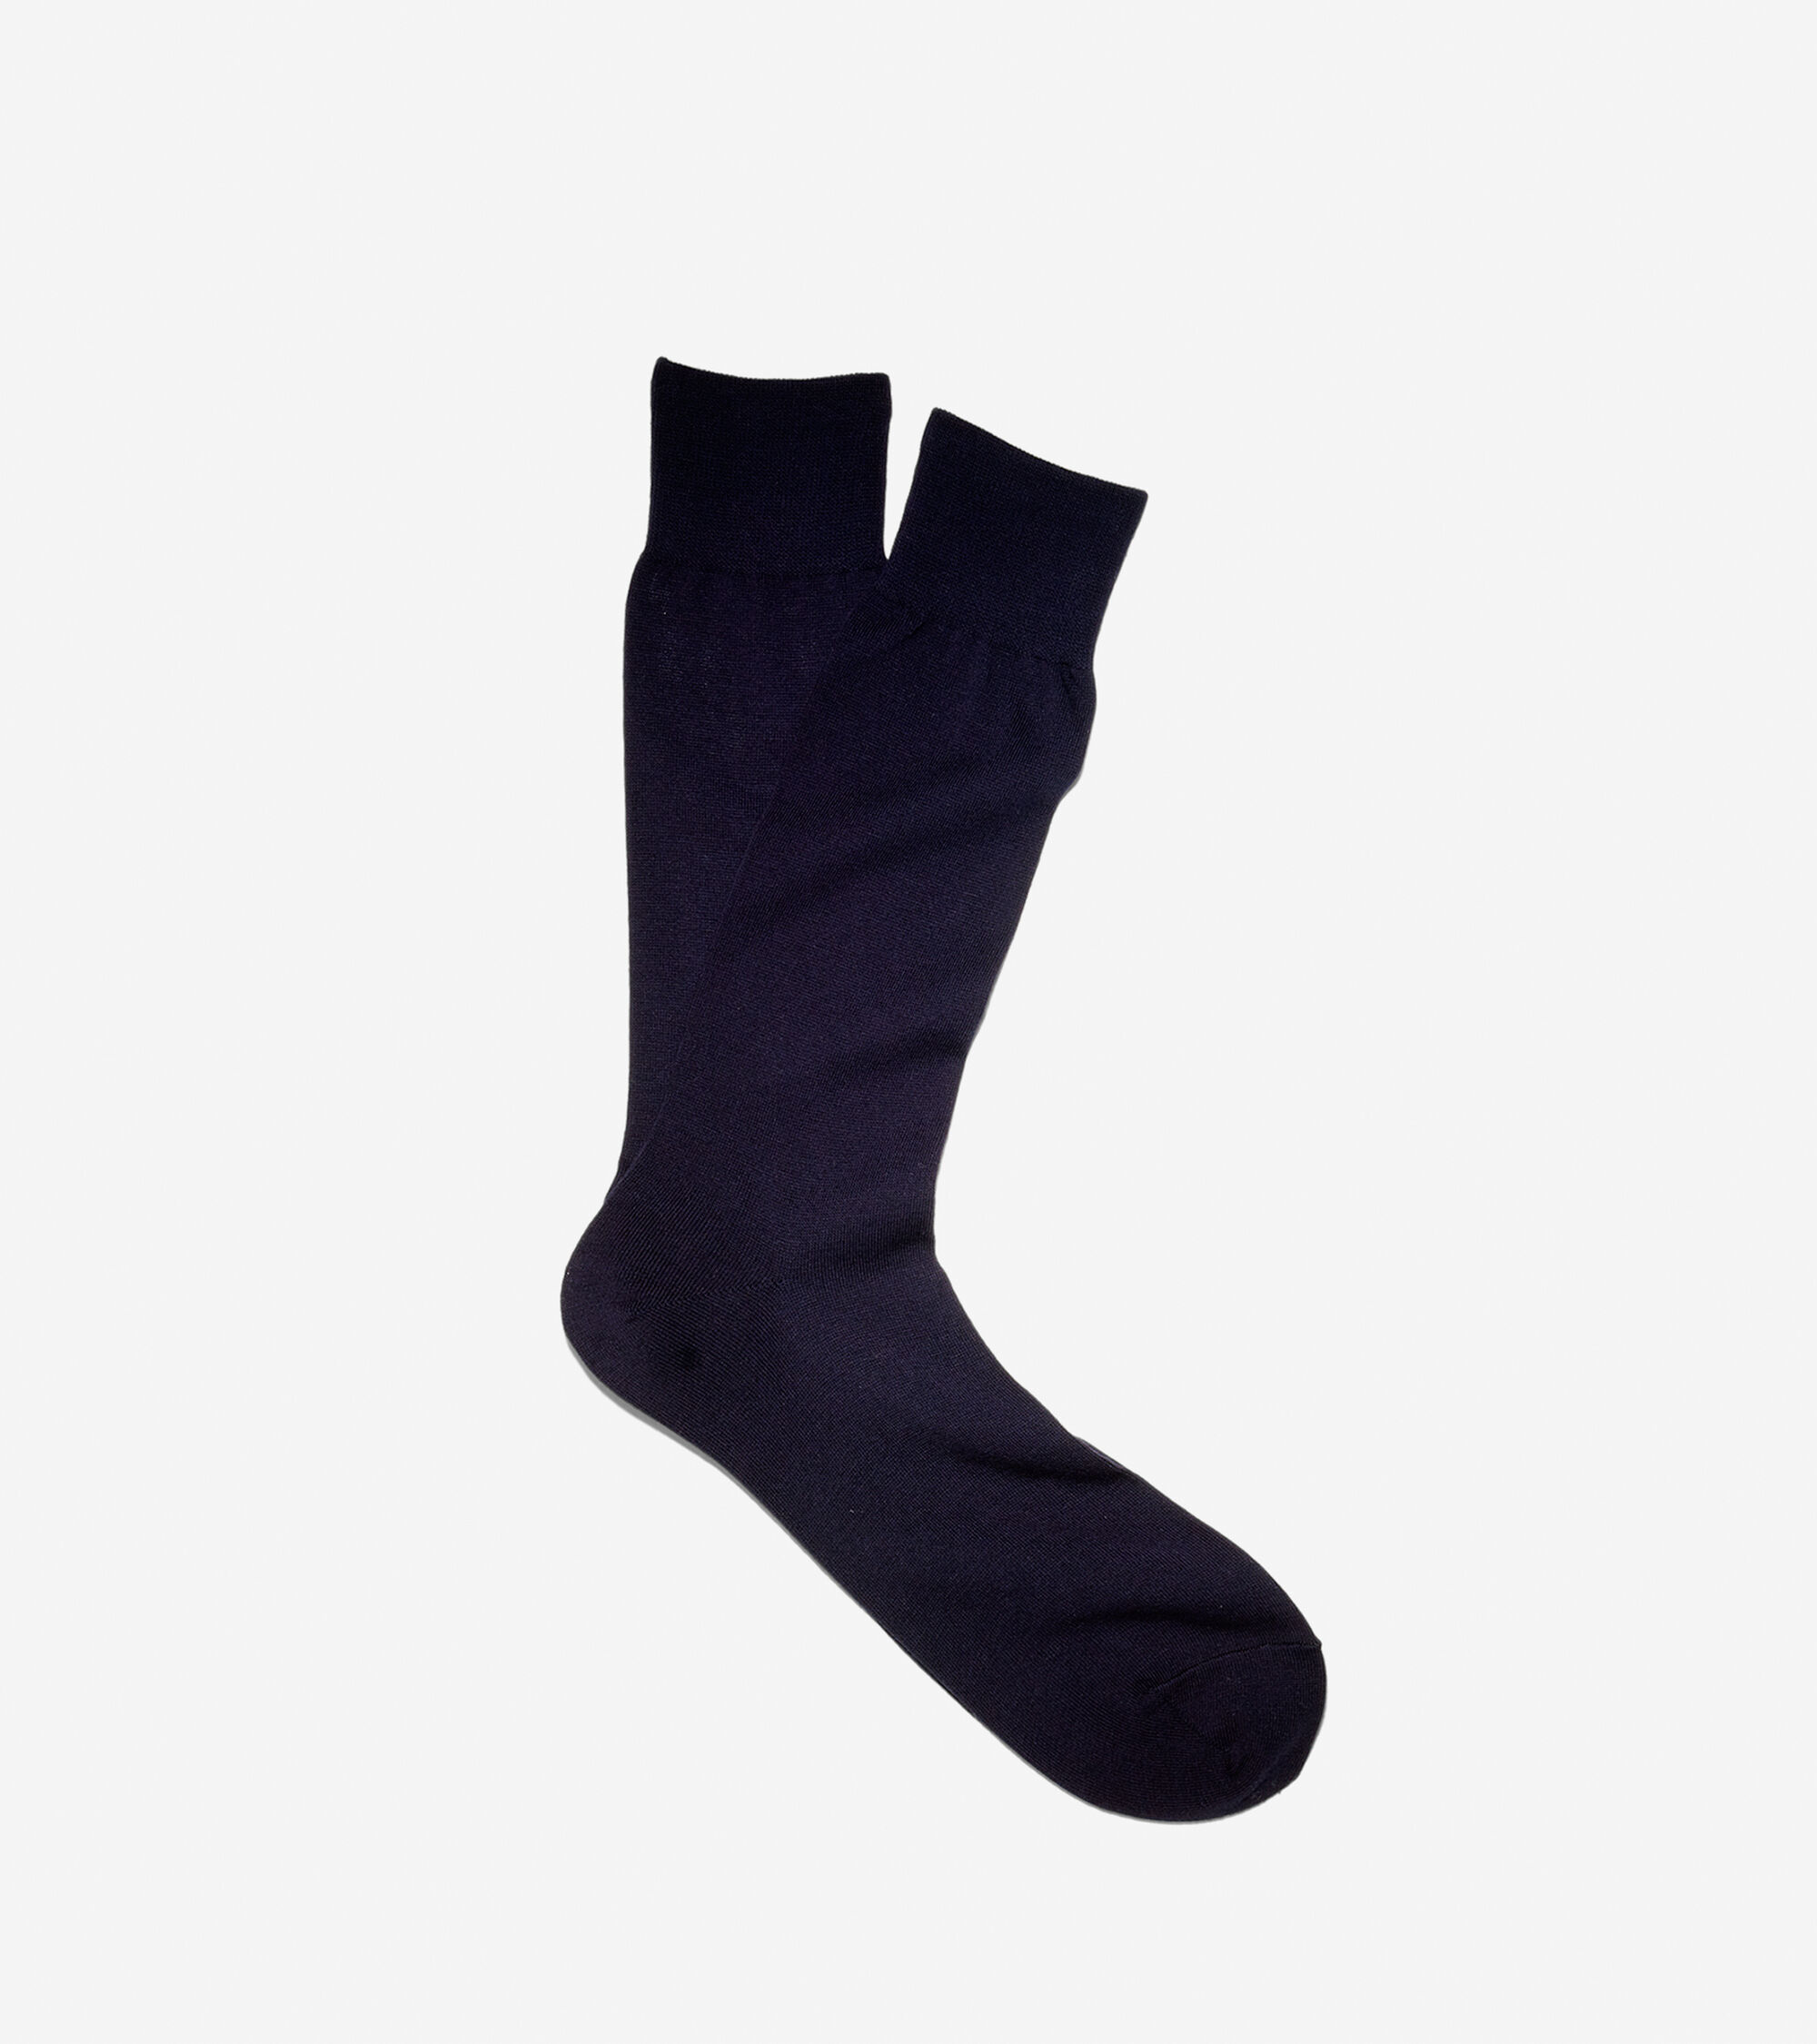 Socks > Dress Flat Knit